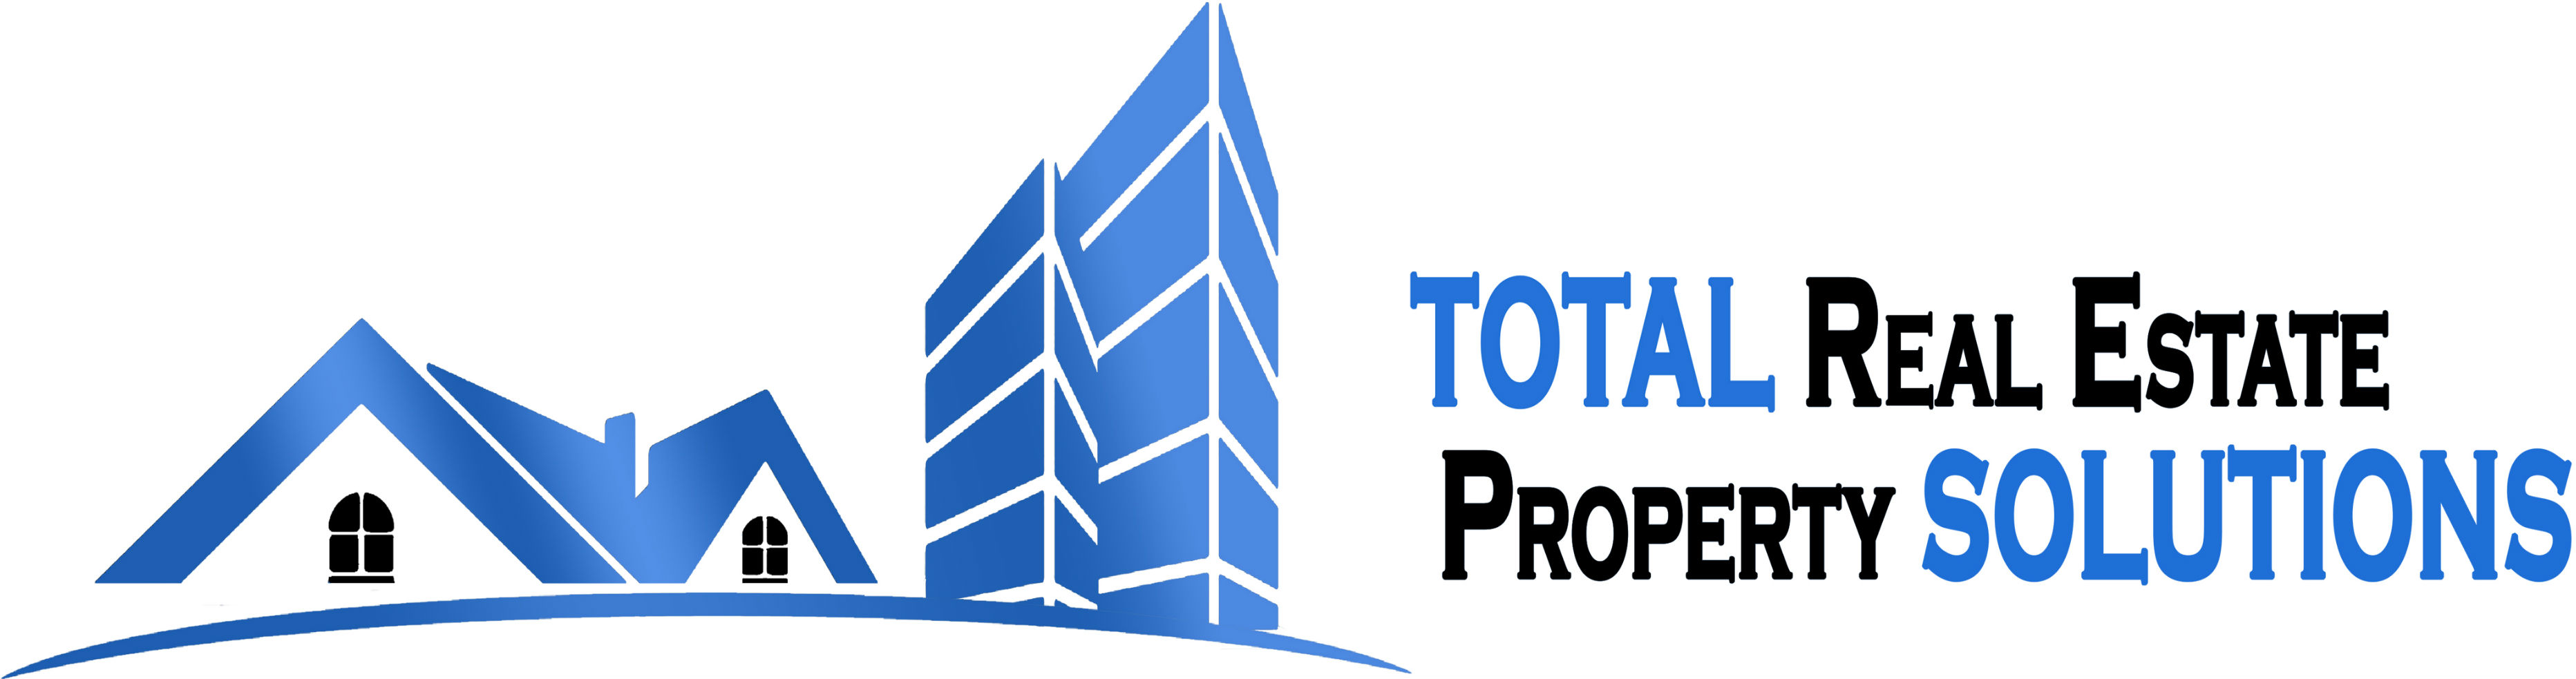 Total Real Estate Property Solutions